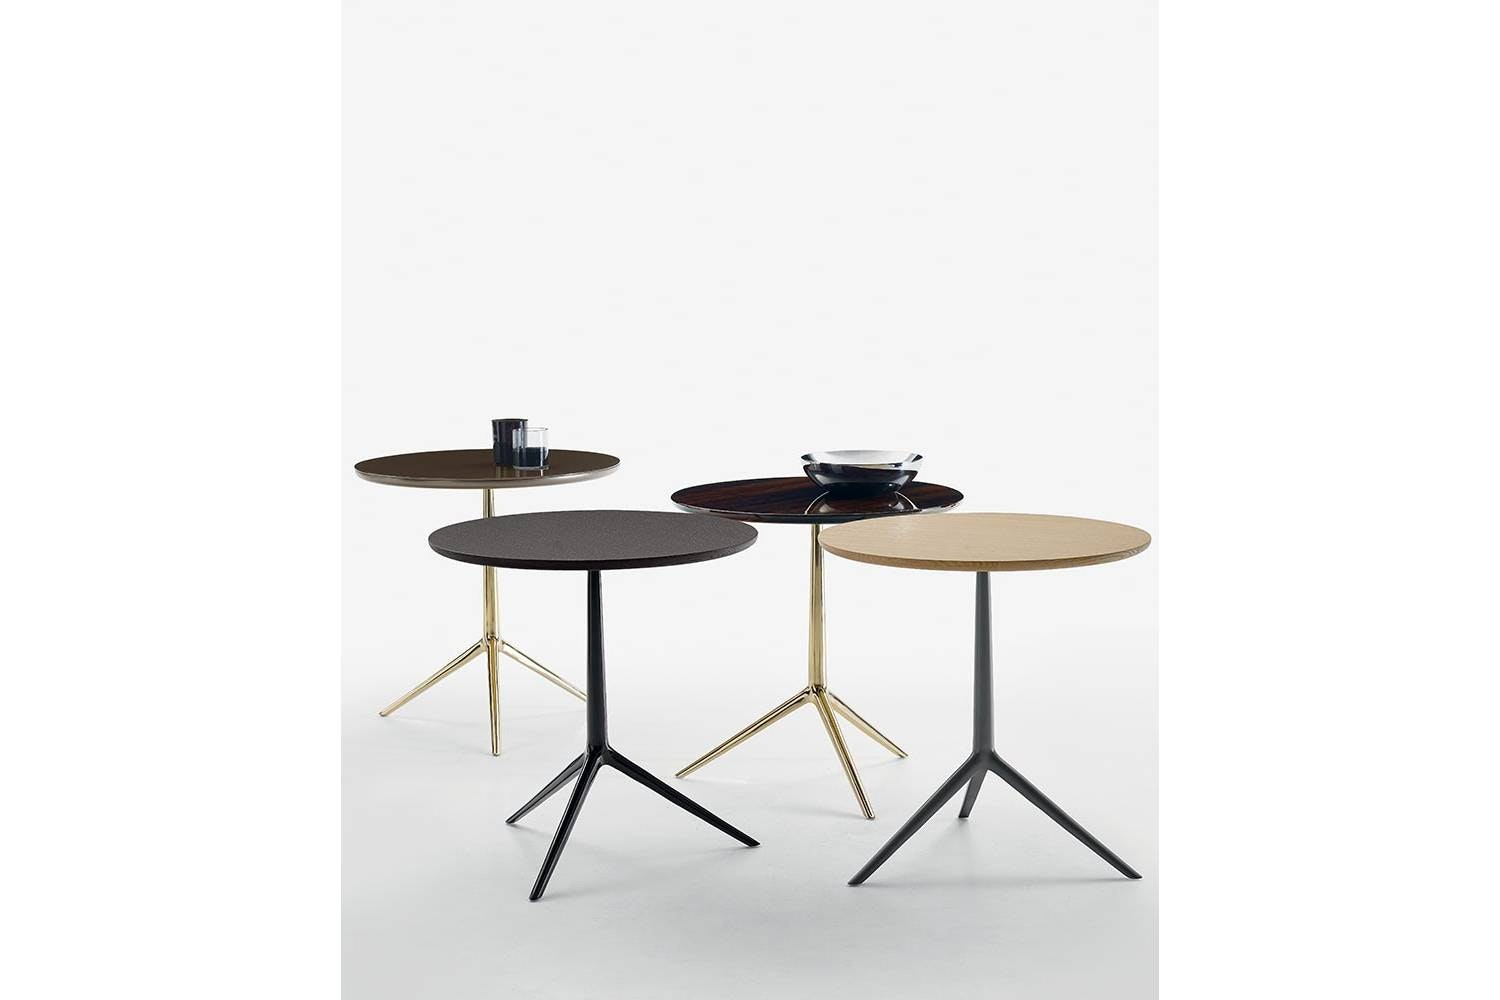 Cozy Side Table by Antonio Citterio for B&B Italia